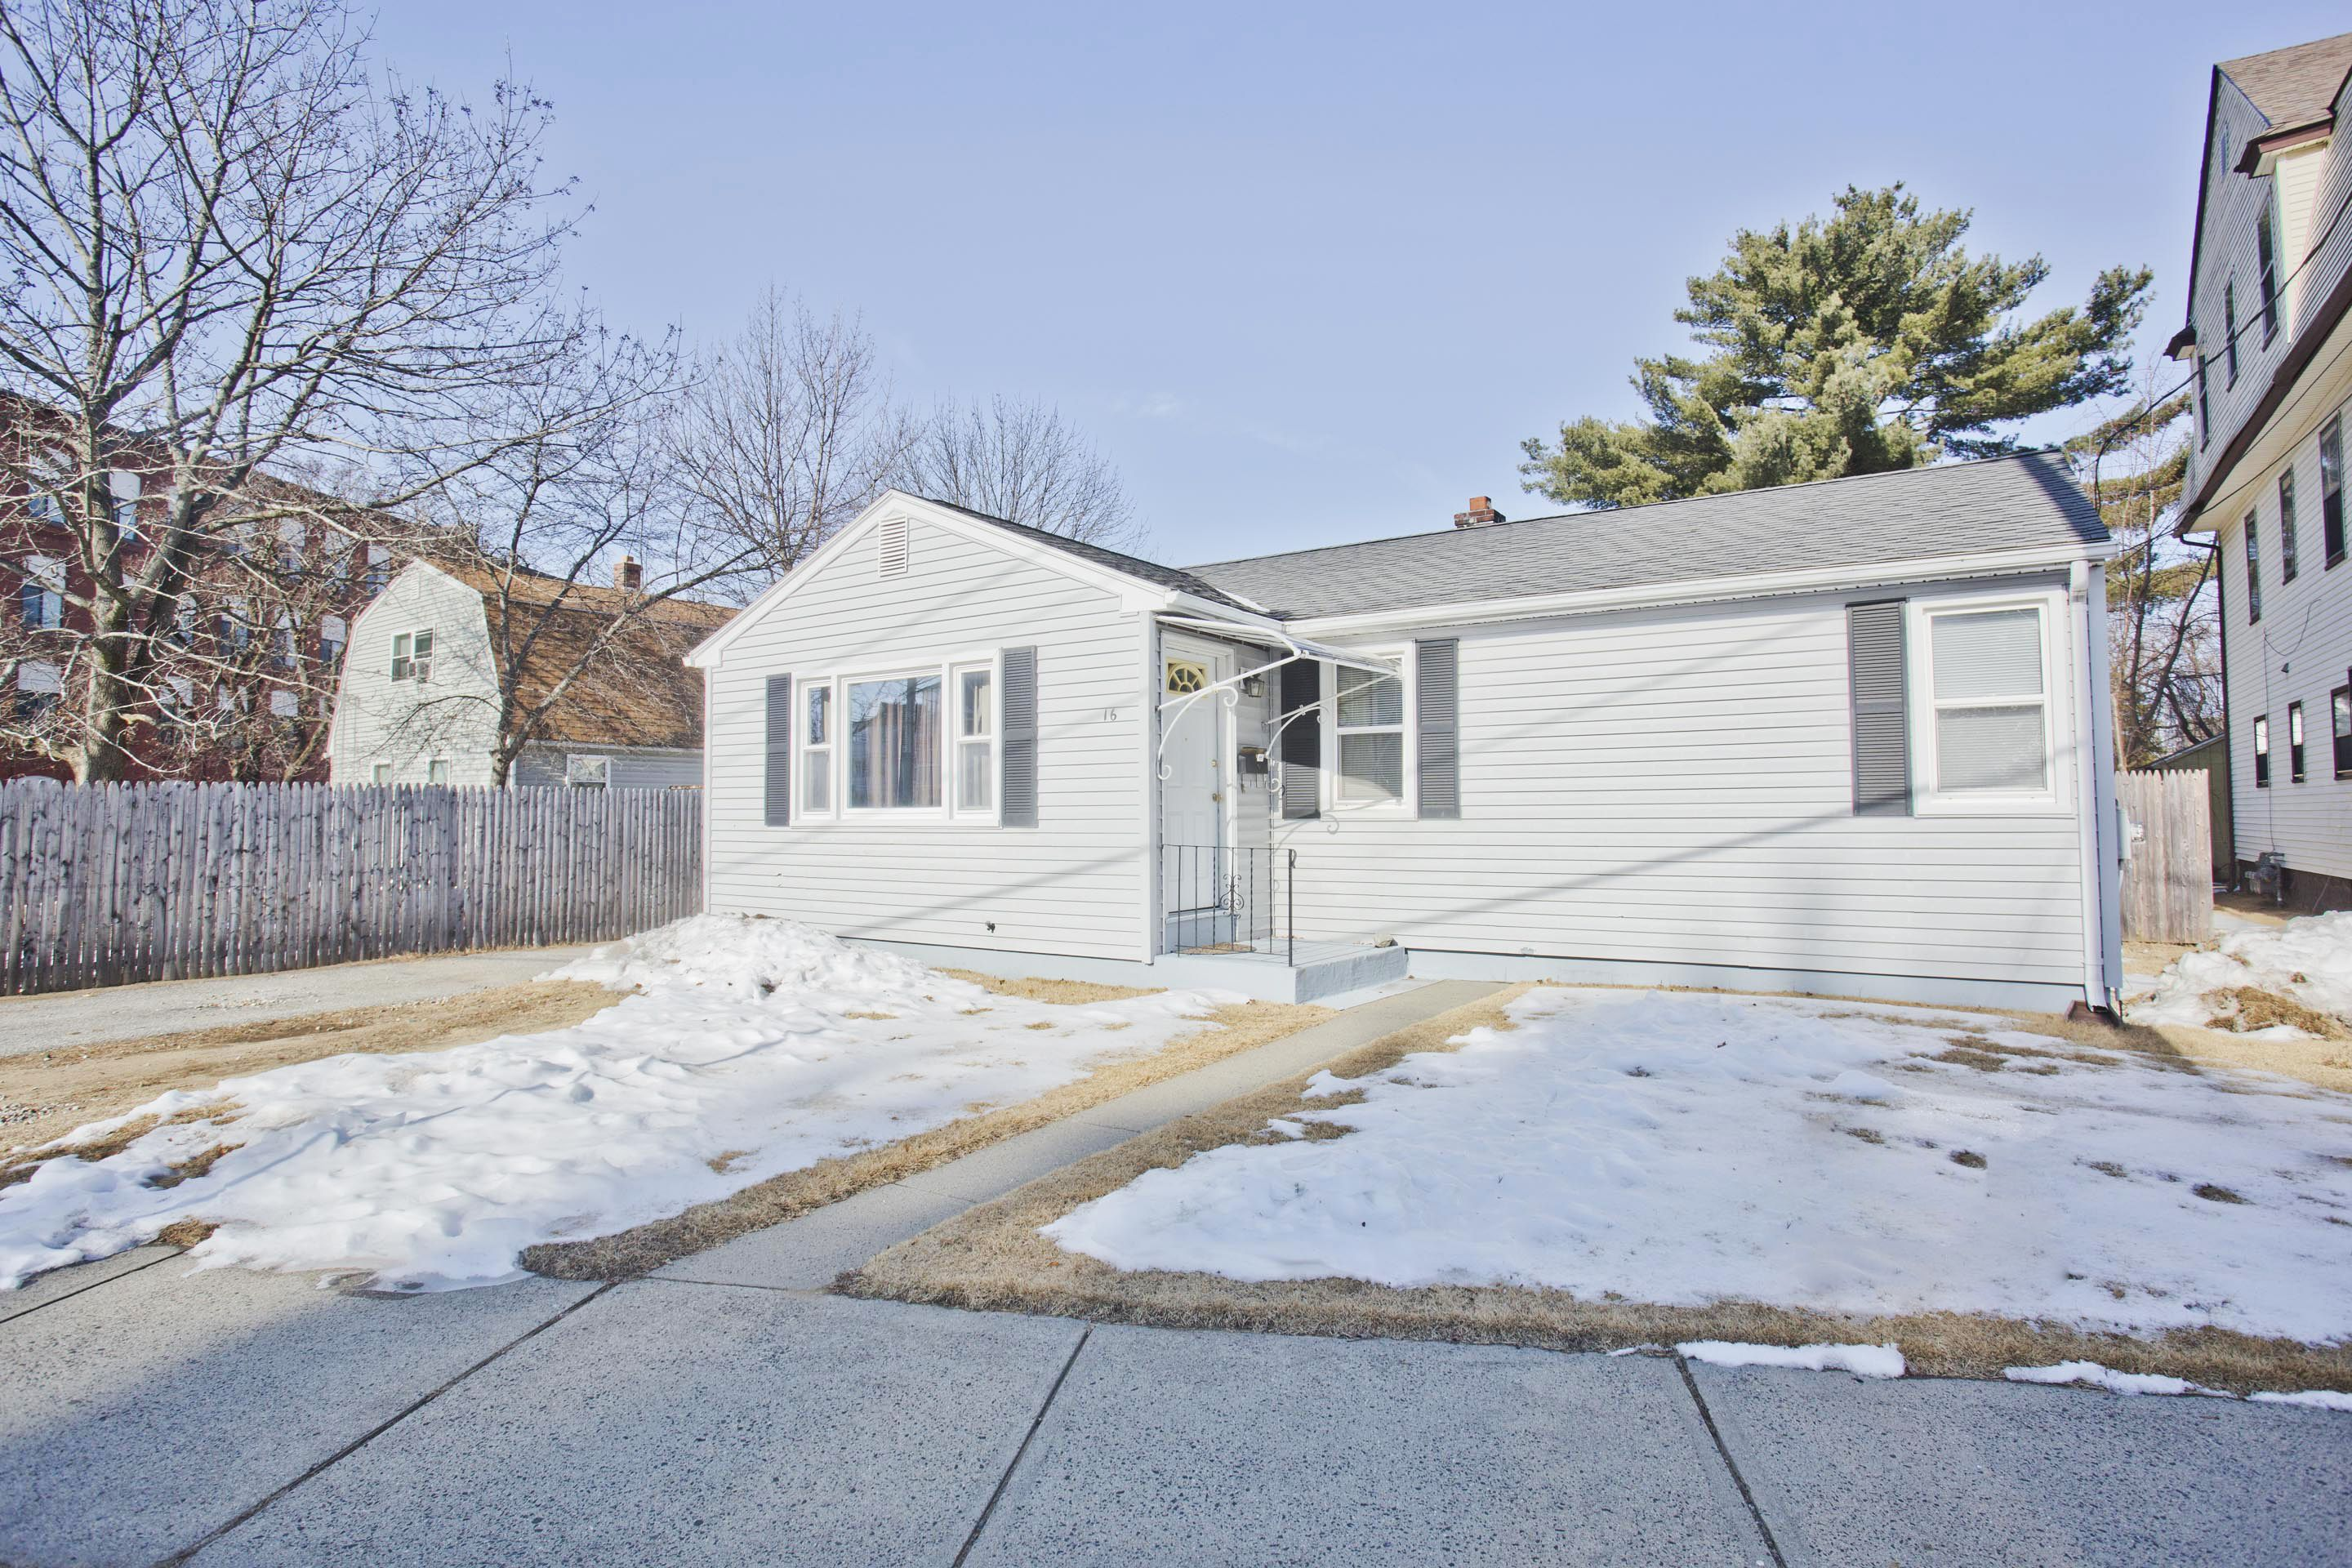 16 asinof avenue chicopee ma 01013 house home forsale buy rh pinterest com